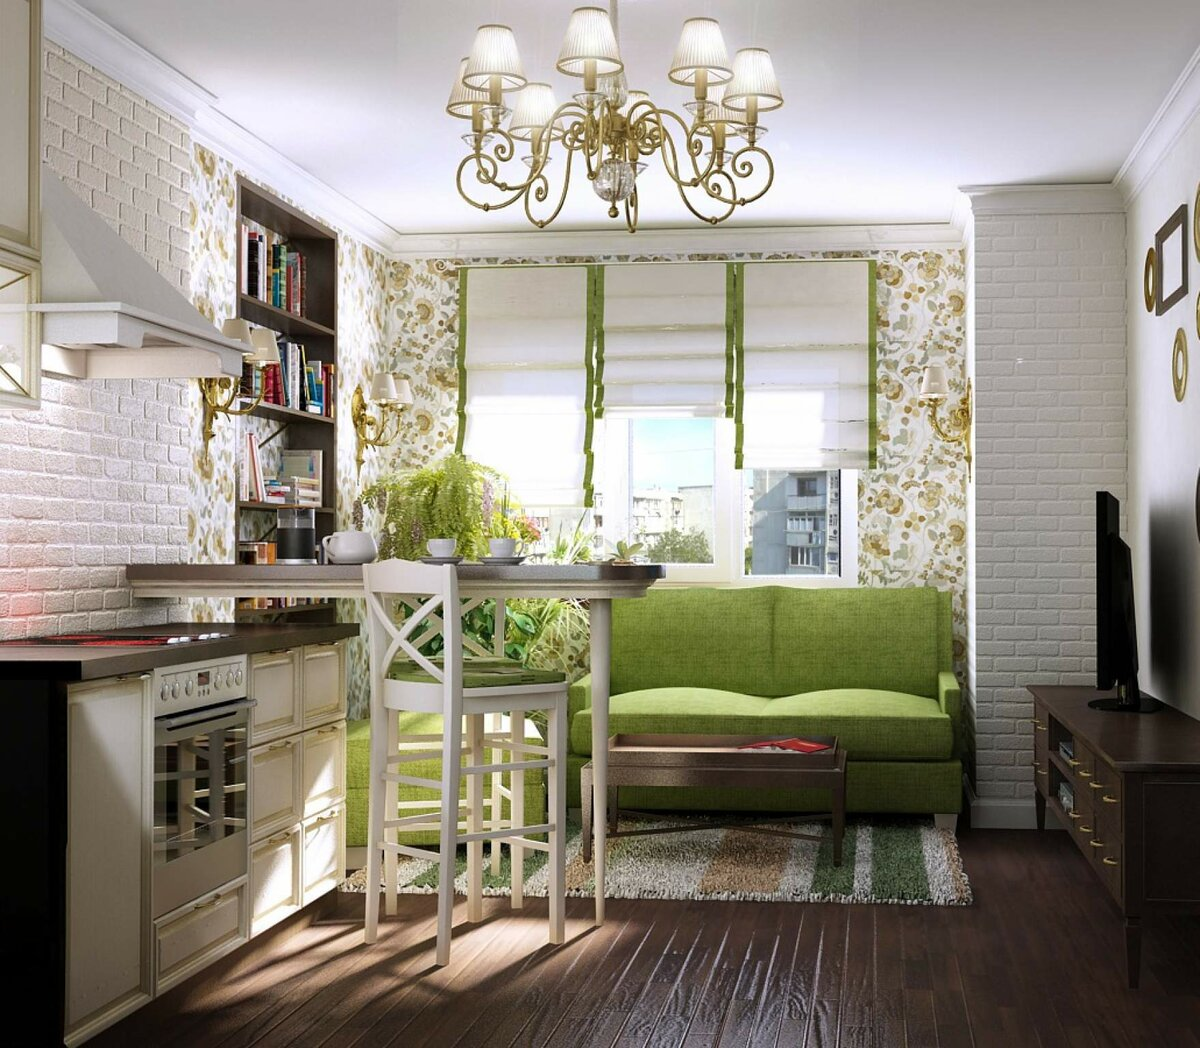 Green colored furniture and wooden floor for the Classic kitchen